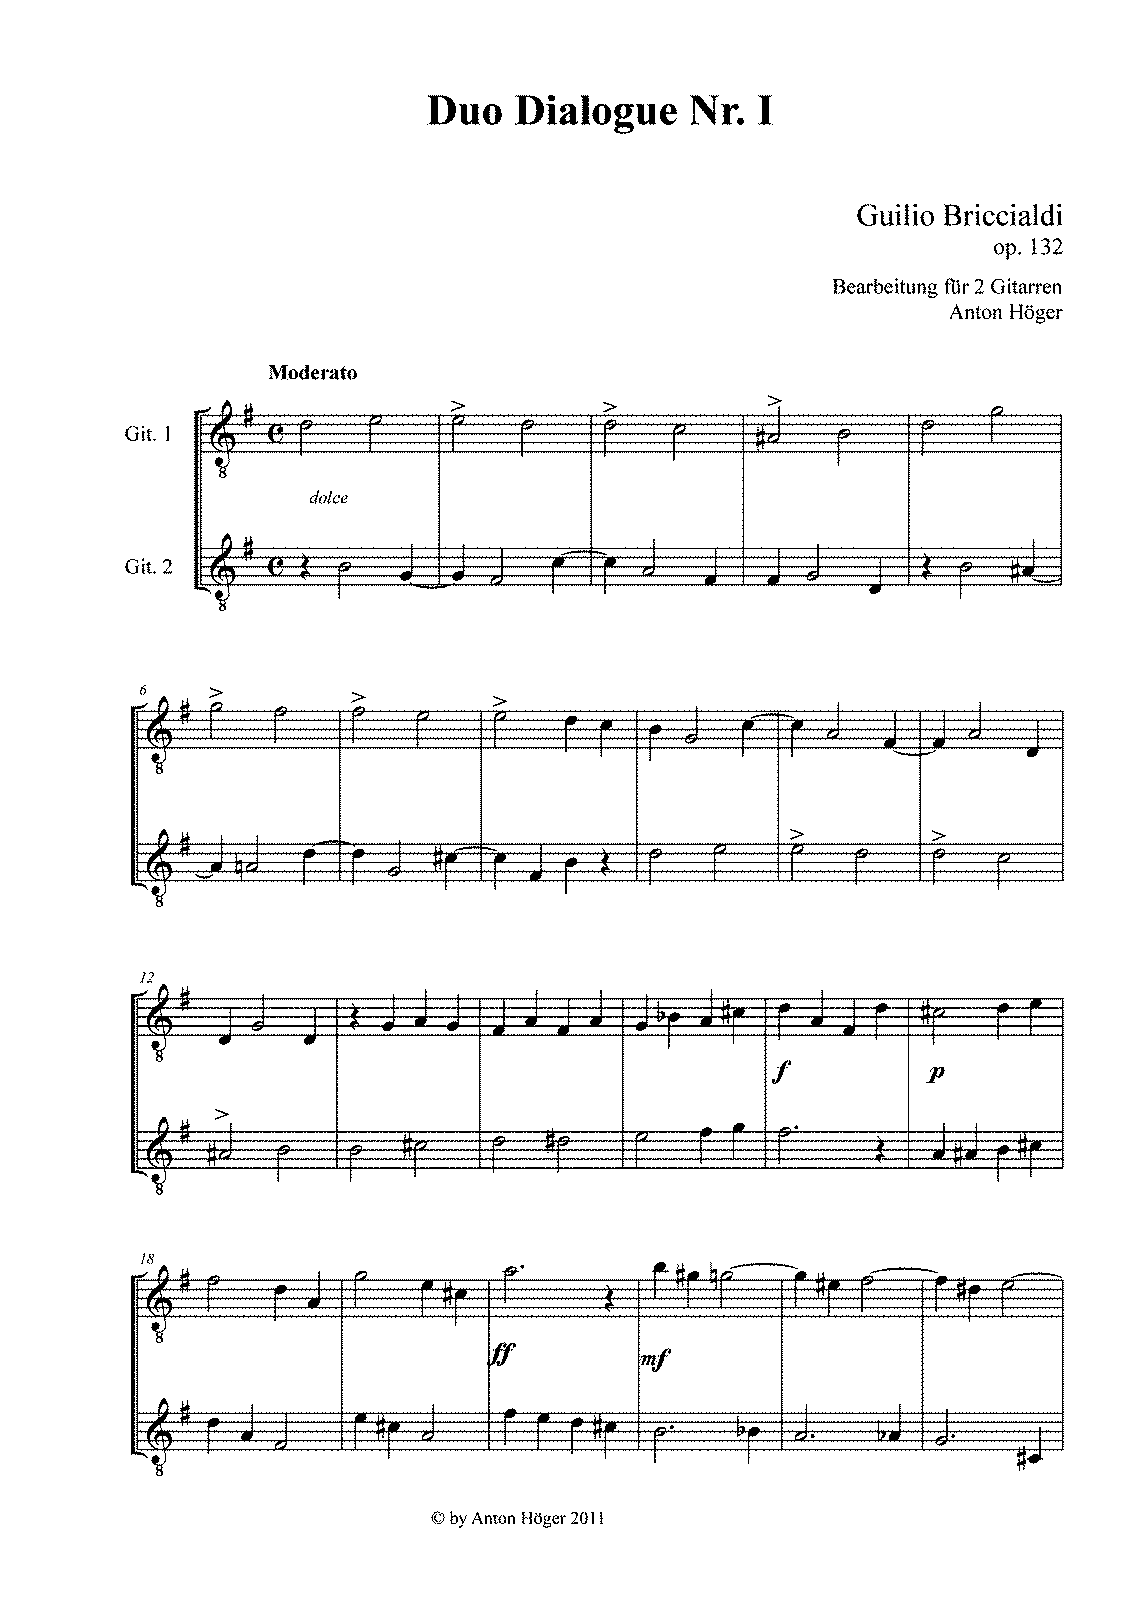 PMLP86486-Briccialdi, Guilio - Duo Dialogue op. 132 Nr. 1.pdf